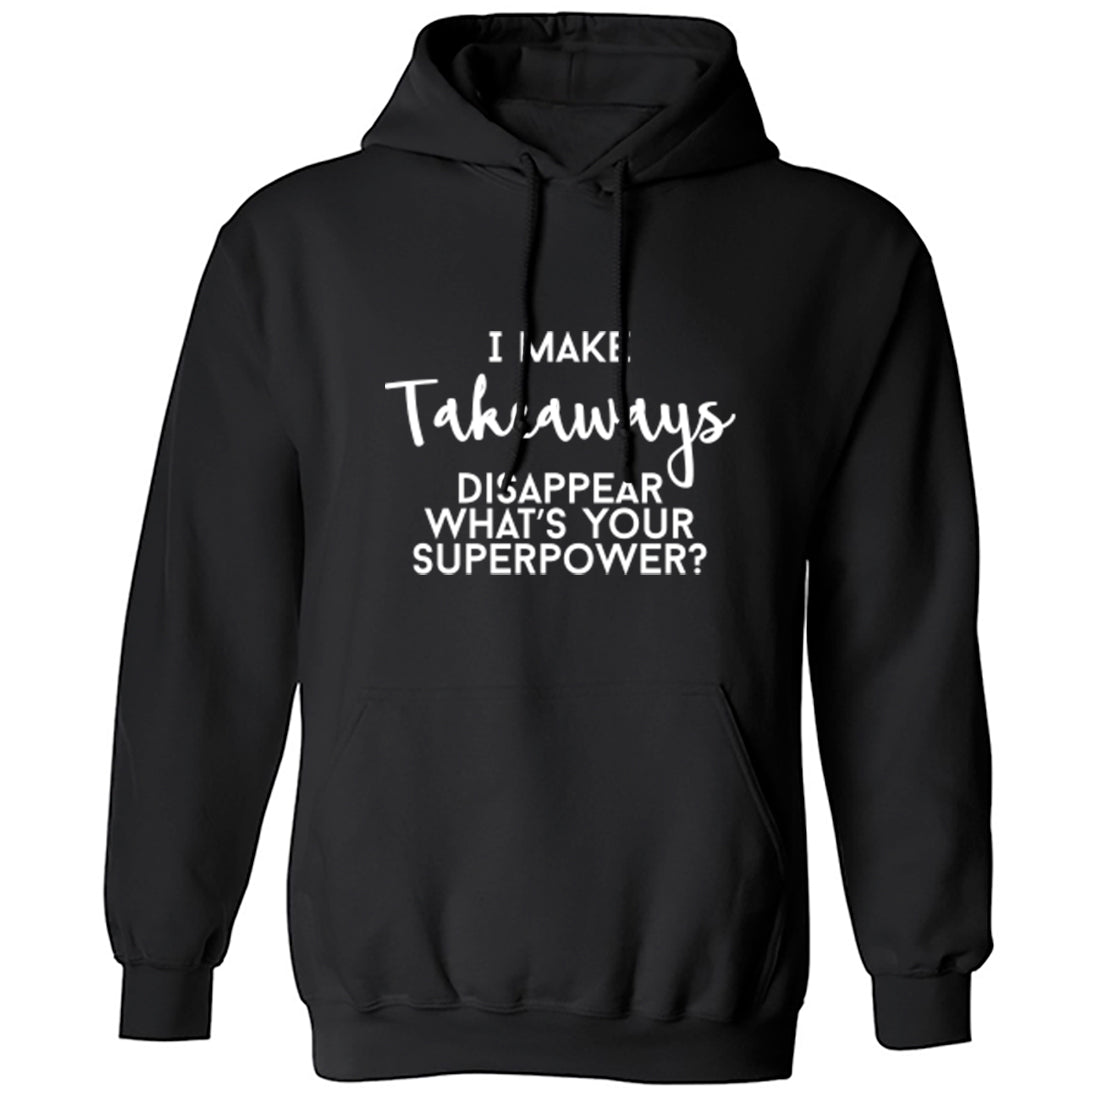 I Make Takeaways Disappear What's Your Superpower? Unisex Hoodie K1586 - Illustrated Identity Ltd.